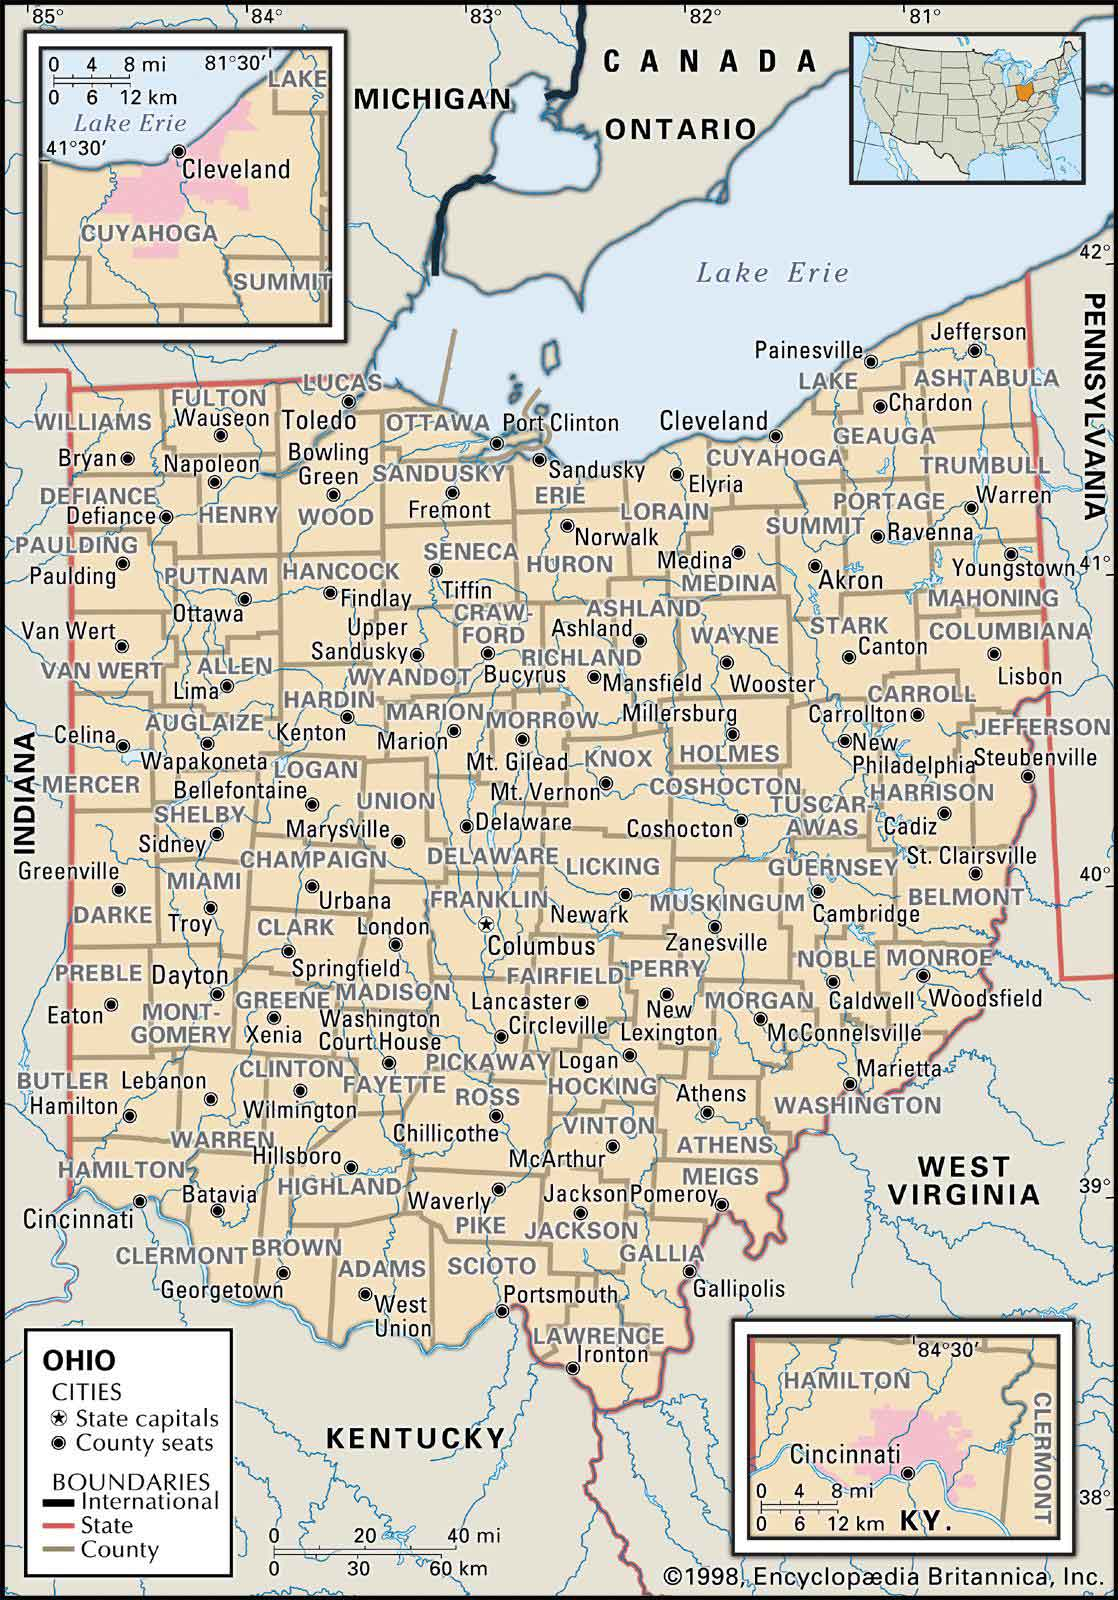 Old Historical City, County and State Maps of Ohio on map of route 322 pennsylvania, map of pennsylvania with cities, map of southern pennsylvania, map of route 30 pennsylvania, map of route 78 pennsylvania, map of route 80 pennsylvania,